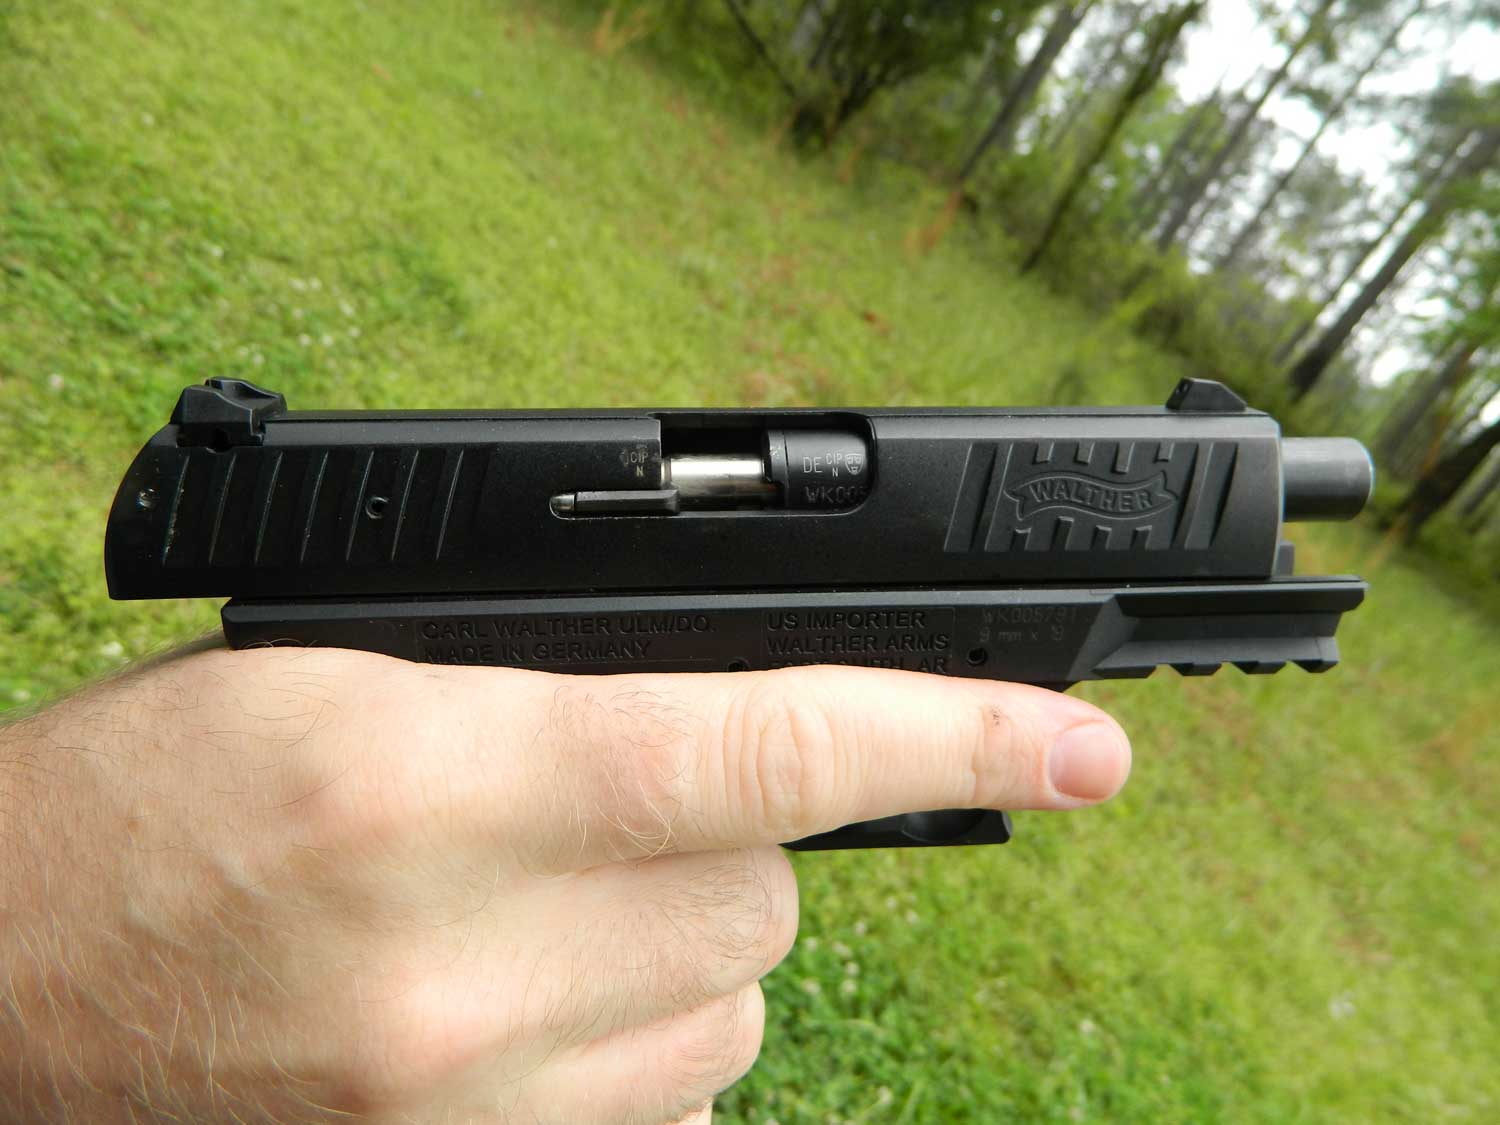 Walther CCP handgun showing a failure to feed